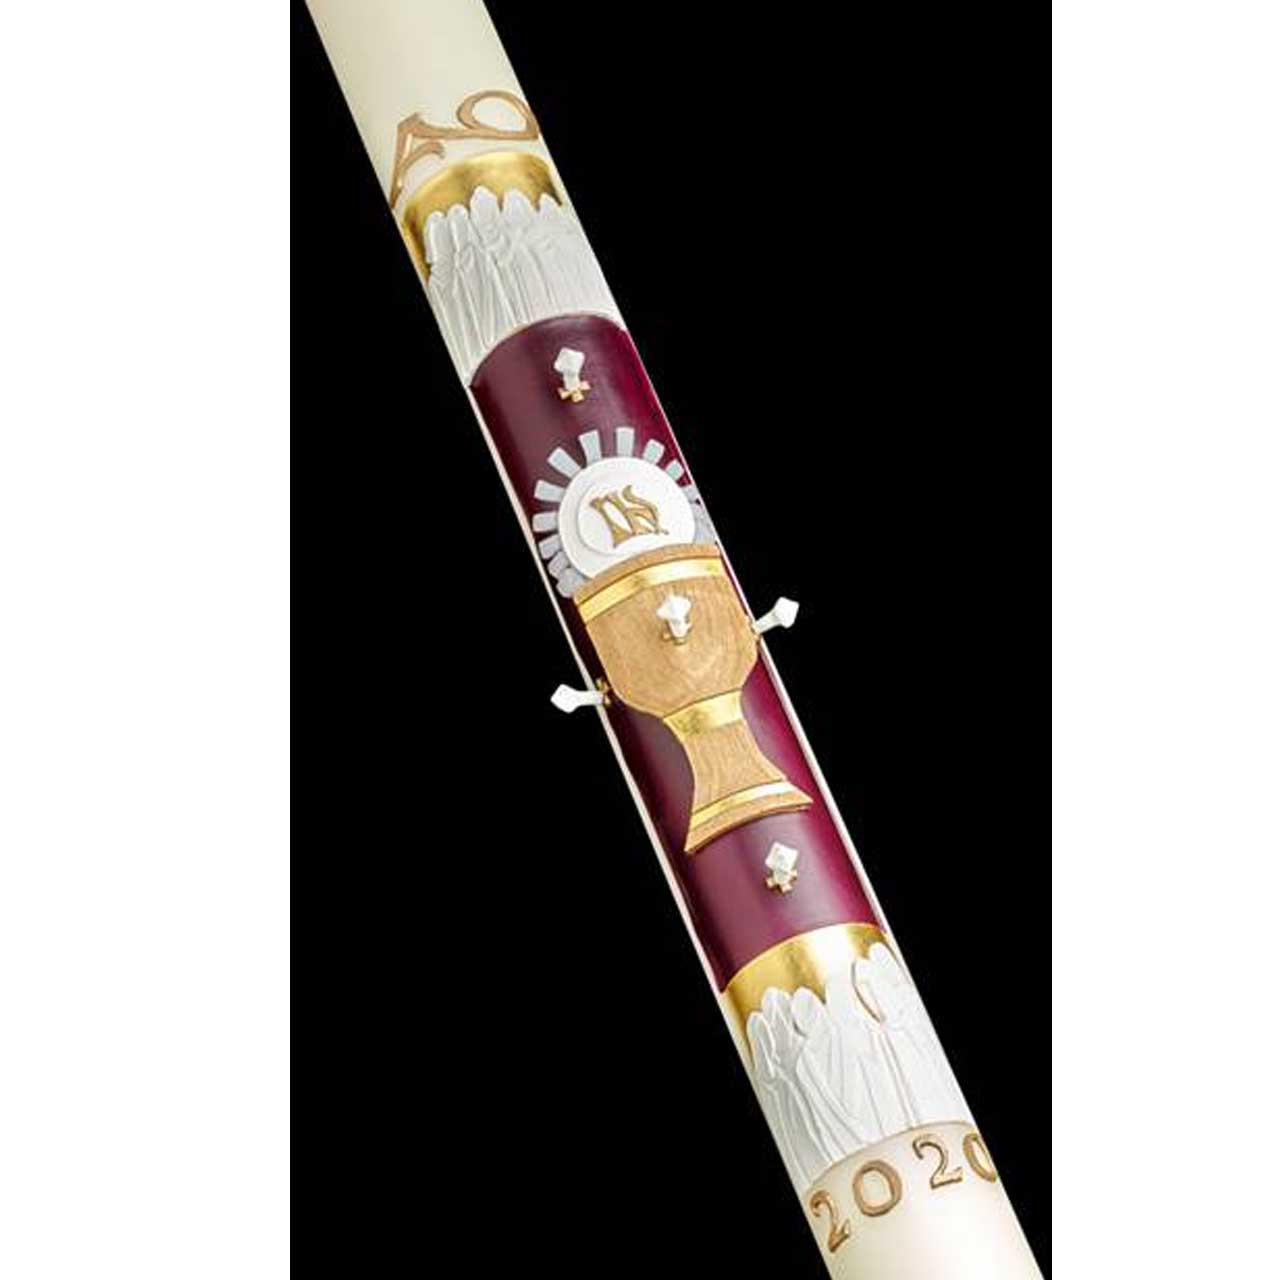 The Twelve Apostles Paschal Candle